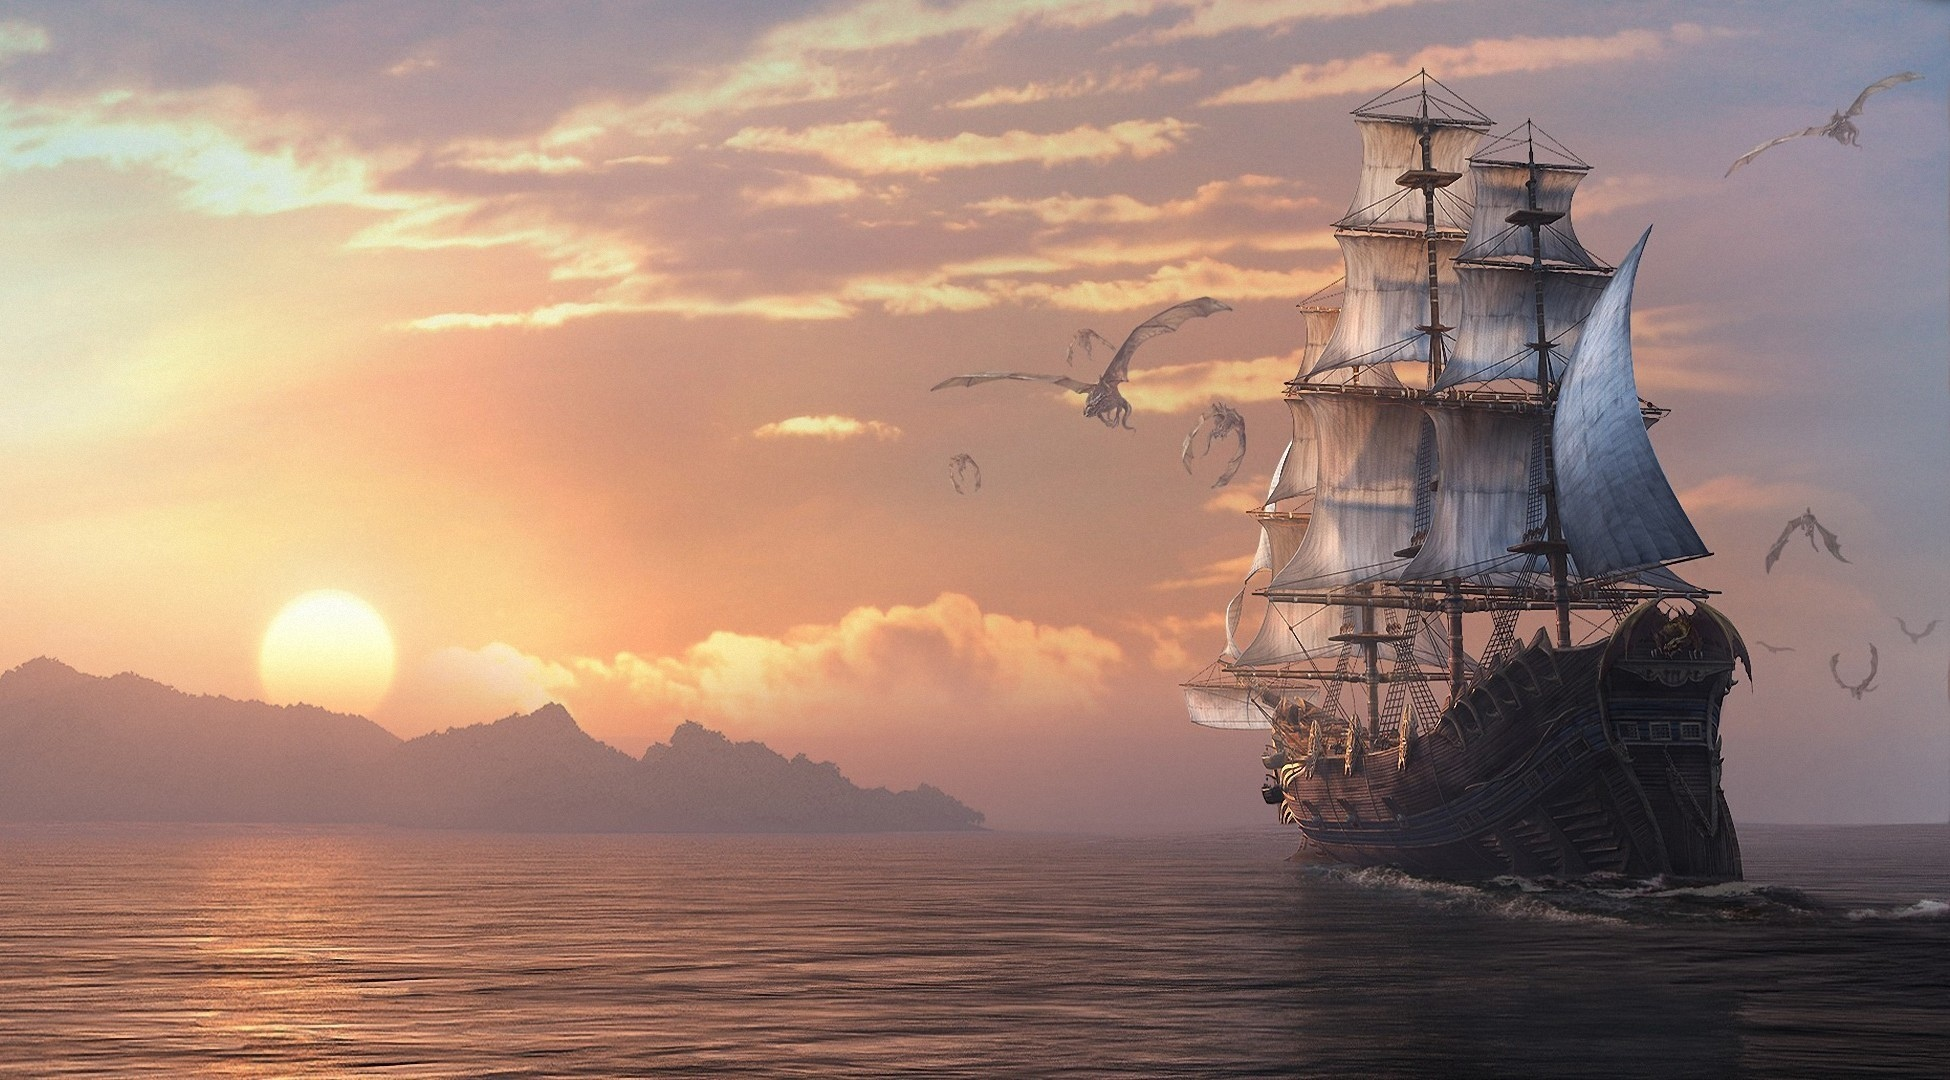 Sailing Under The Dragon Flight Hd Wallpaper Background Image 1950x1080 Id 571155 Wallpaper Abyss